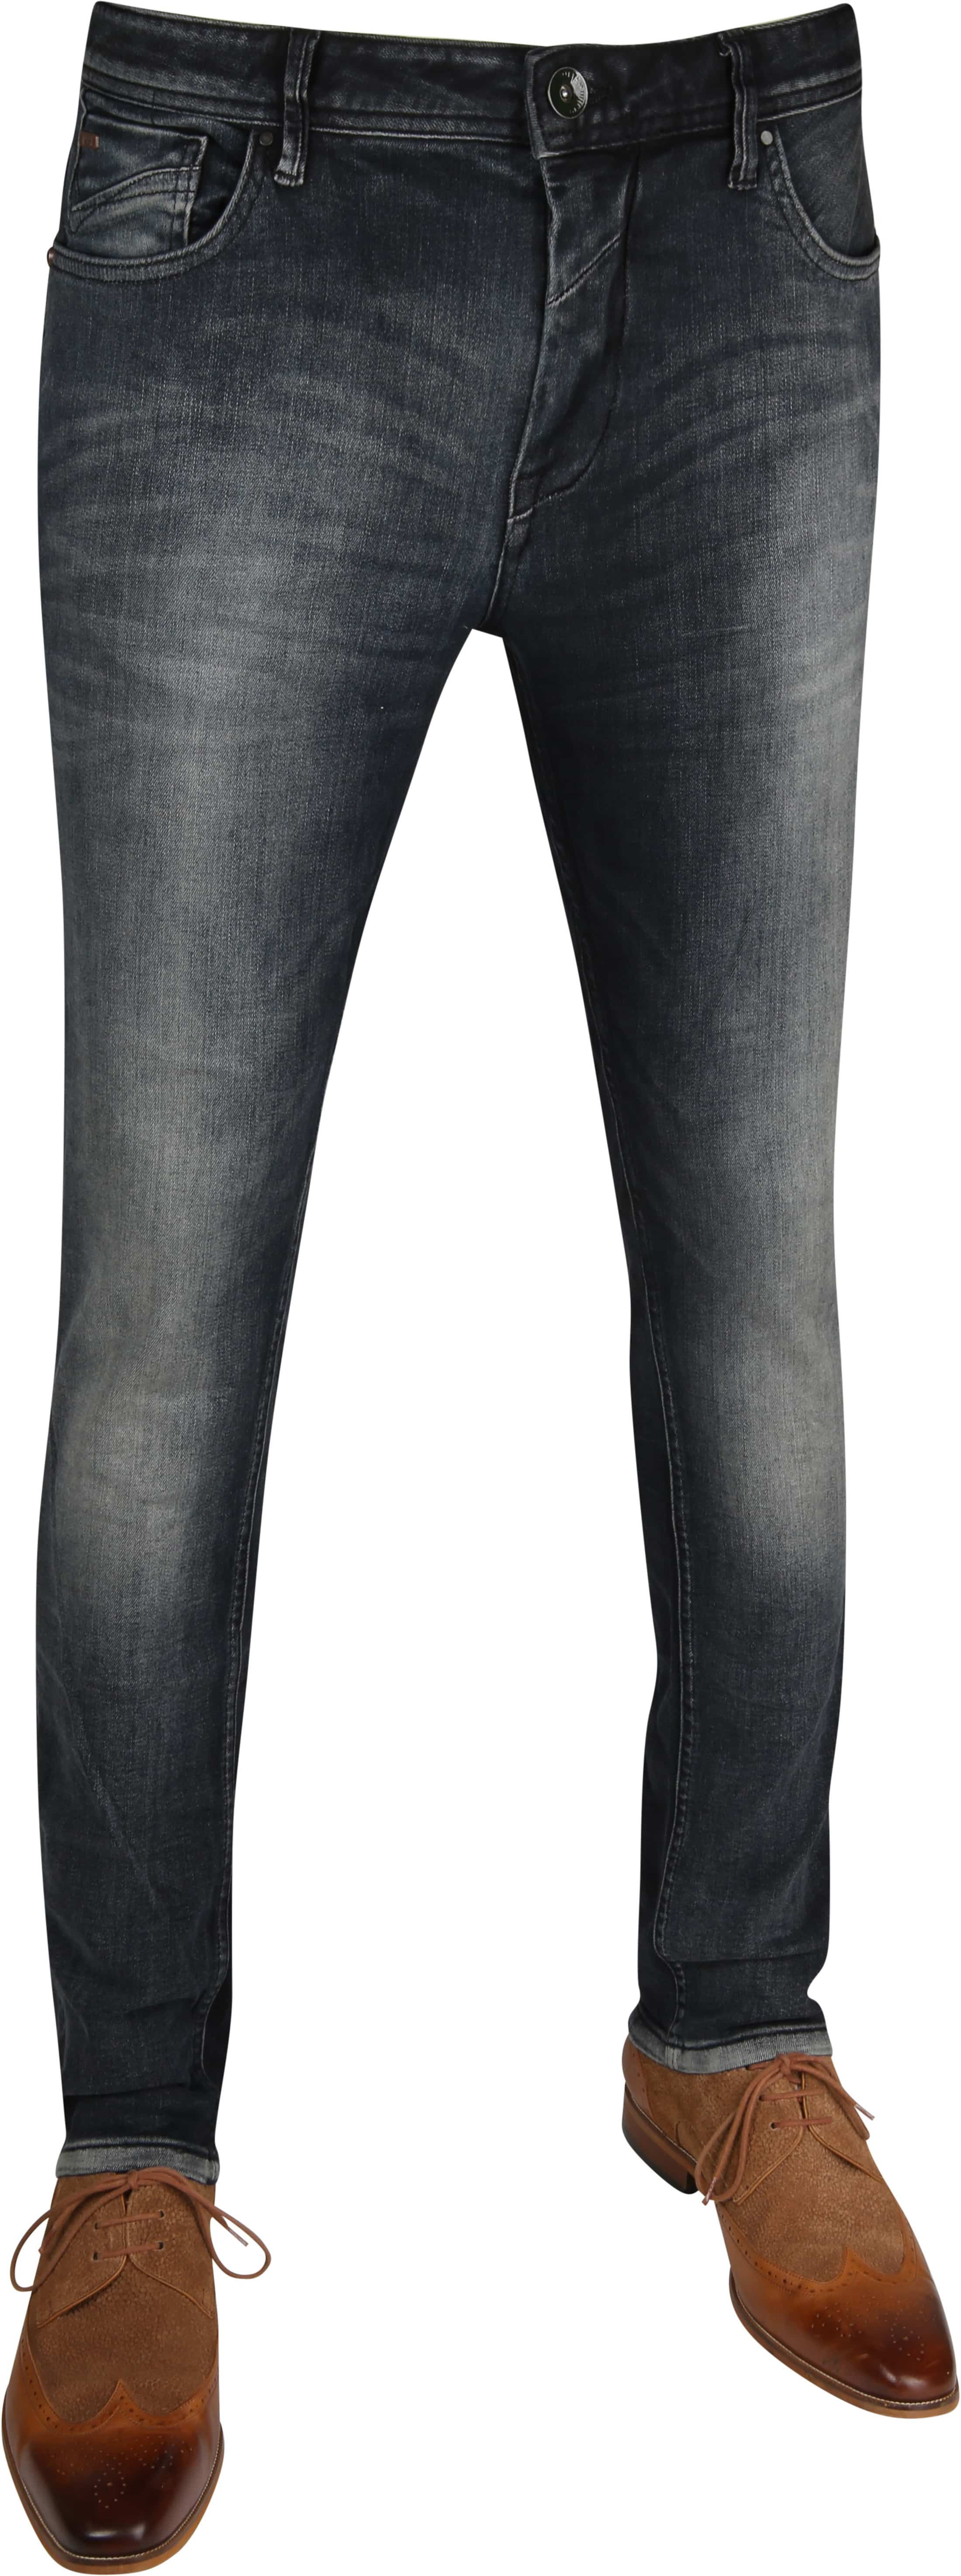 No-Excess Jeans 710 Grey Denim foto 0